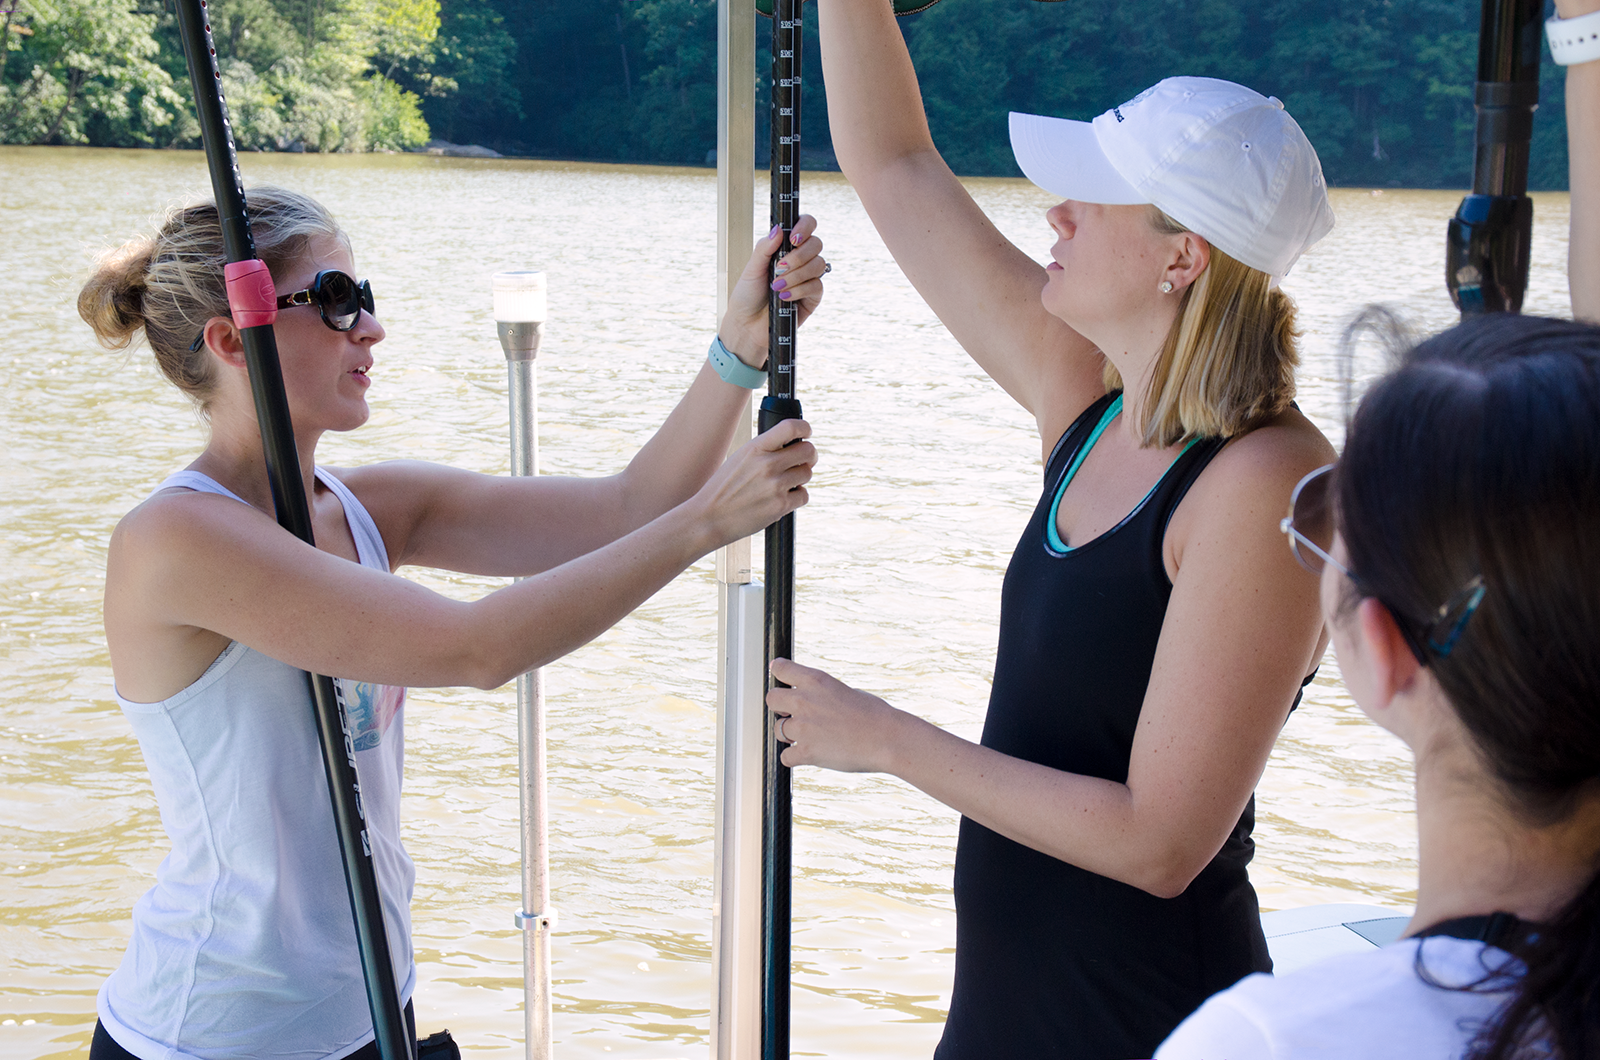 Joelle shows Jamie and Kaitlynn how to size their paddles